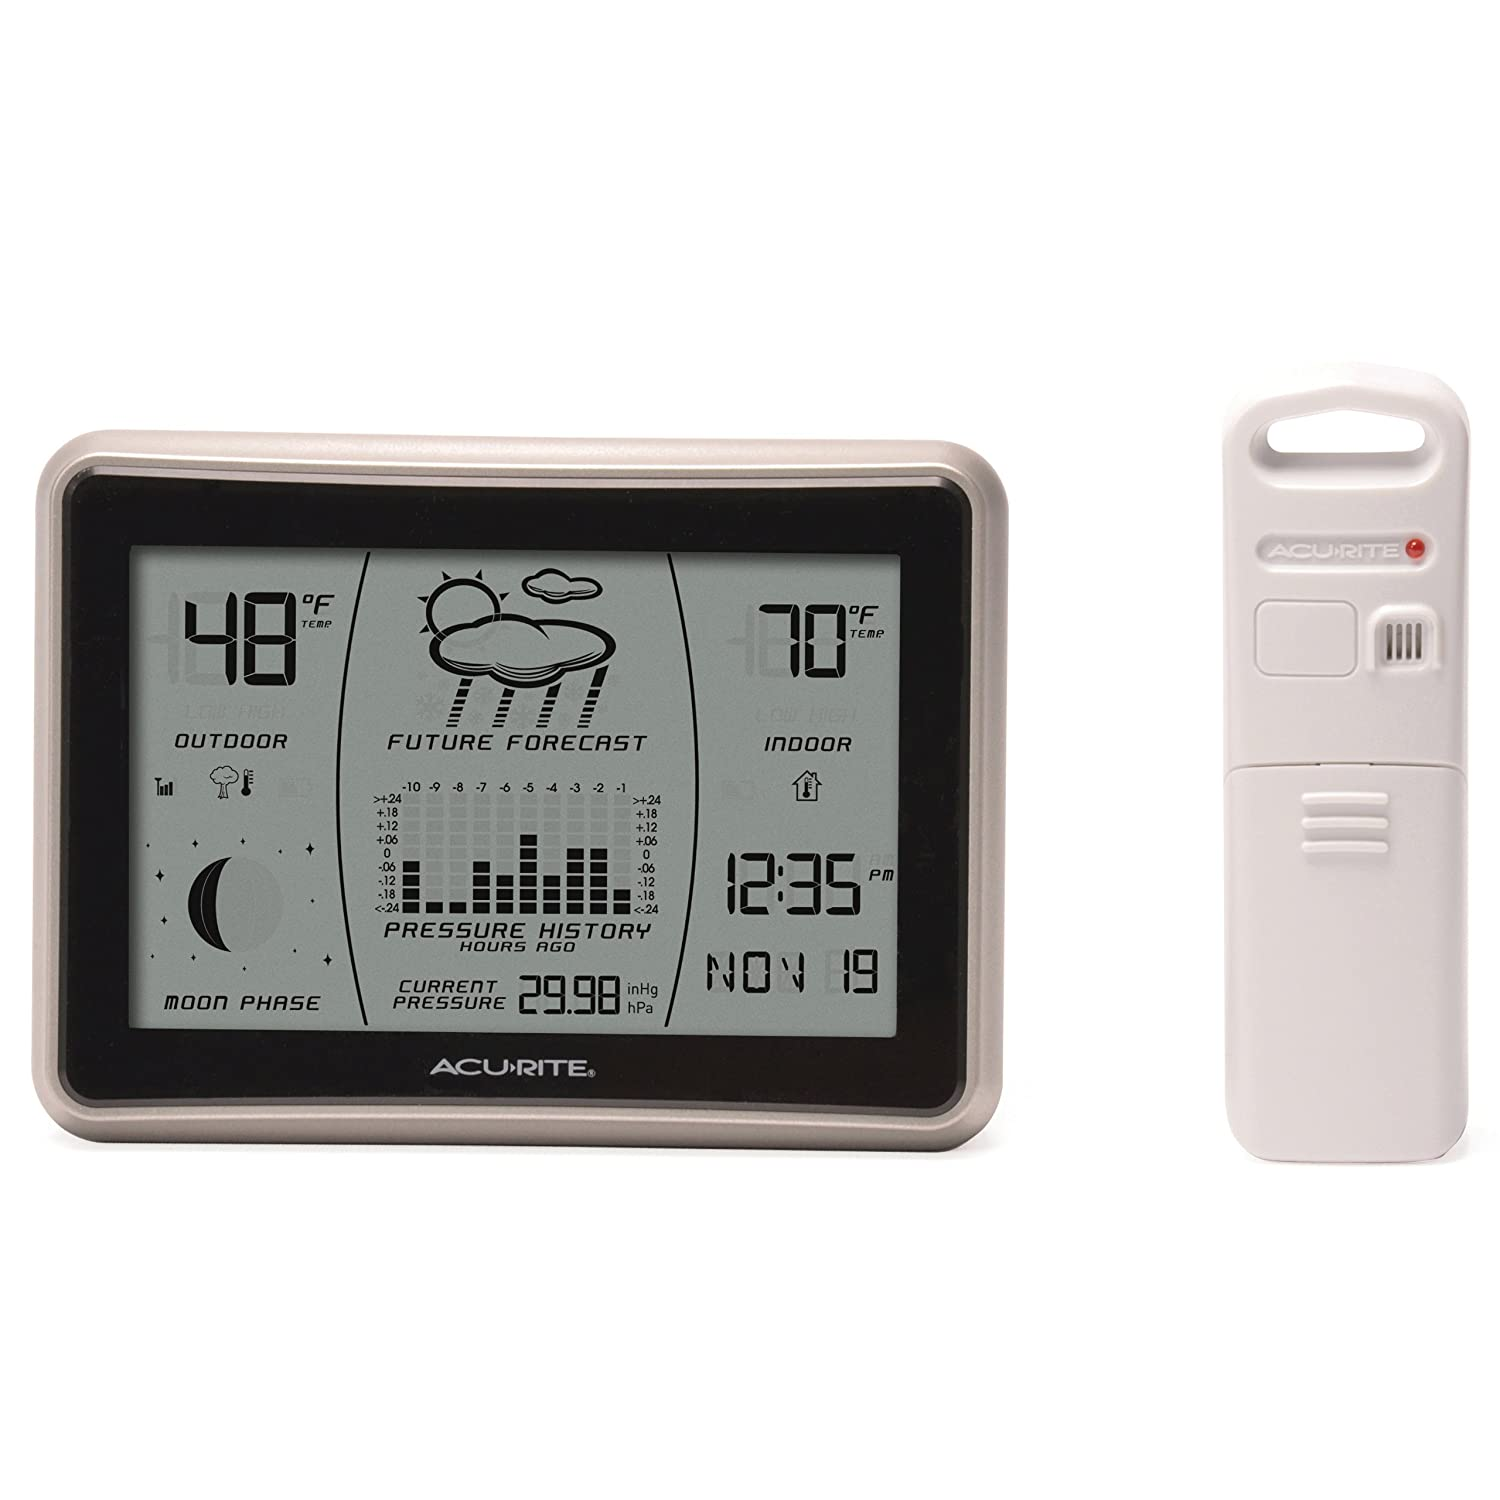 AcuRite 00621 Wireless Weather Forecaster with Intelli-Time